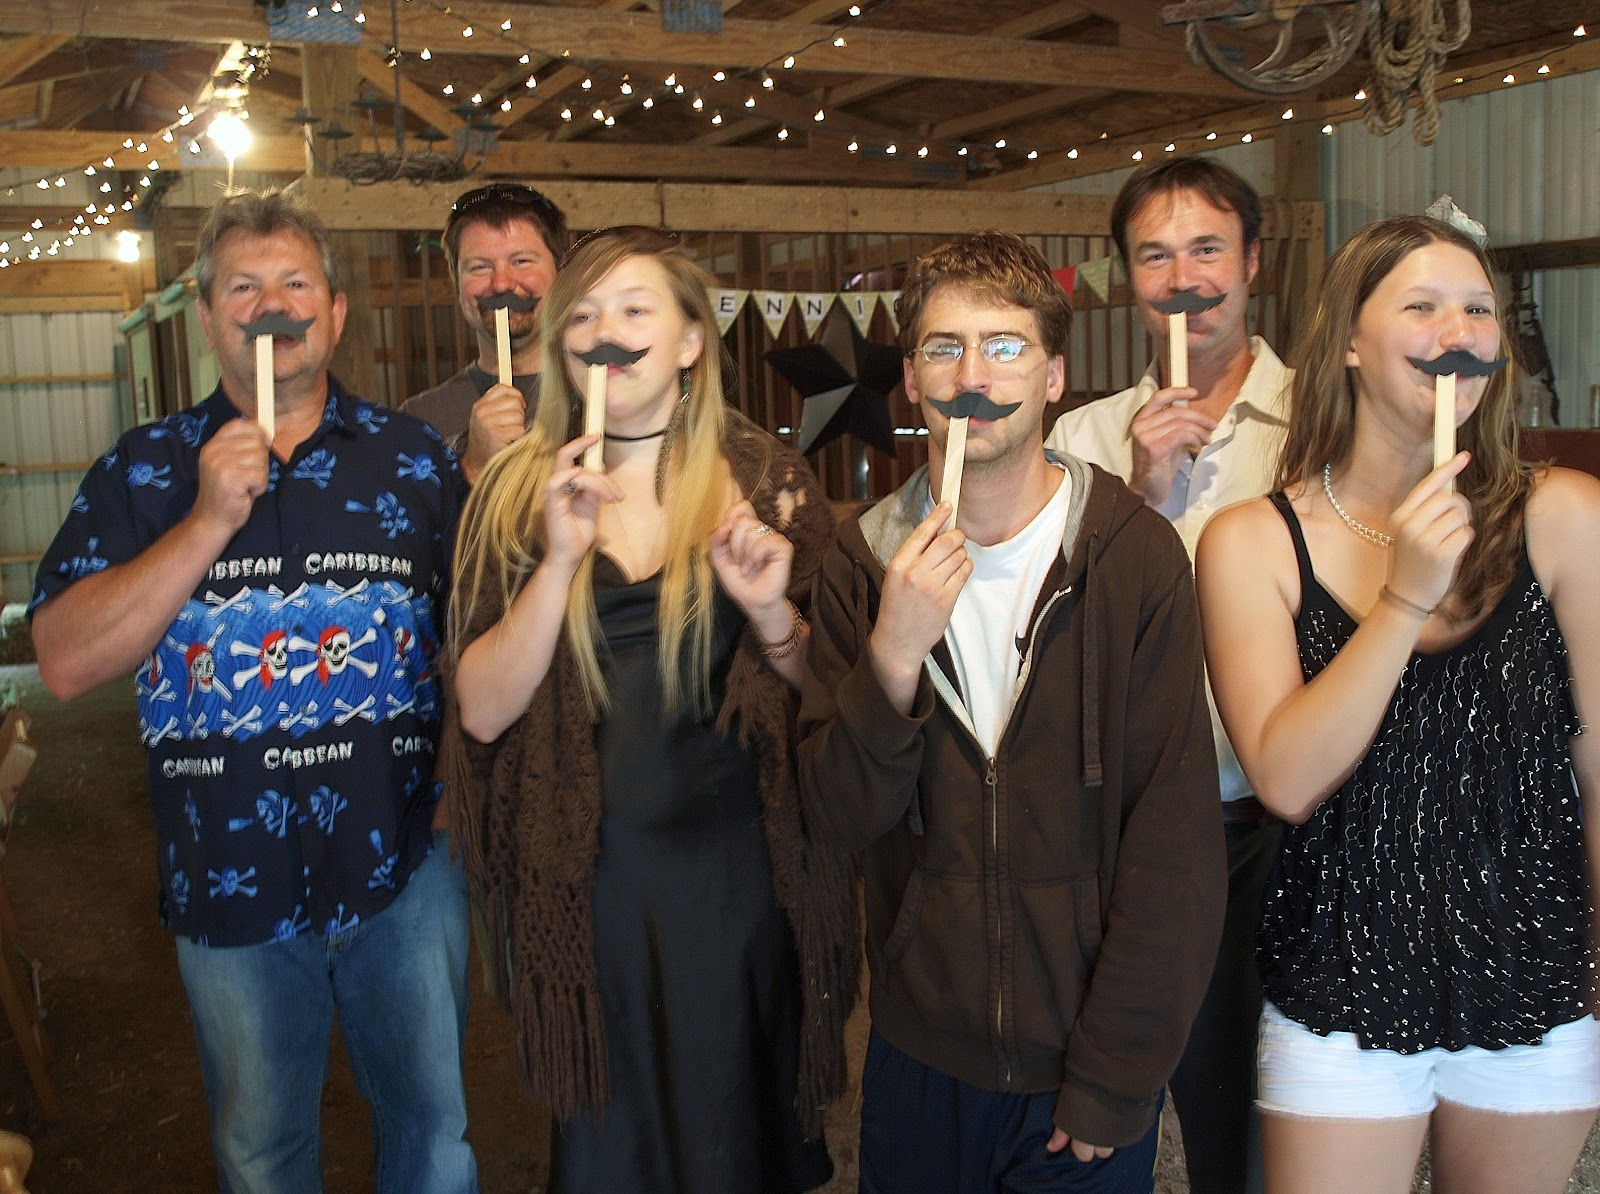 The Mustaches Were A Hit